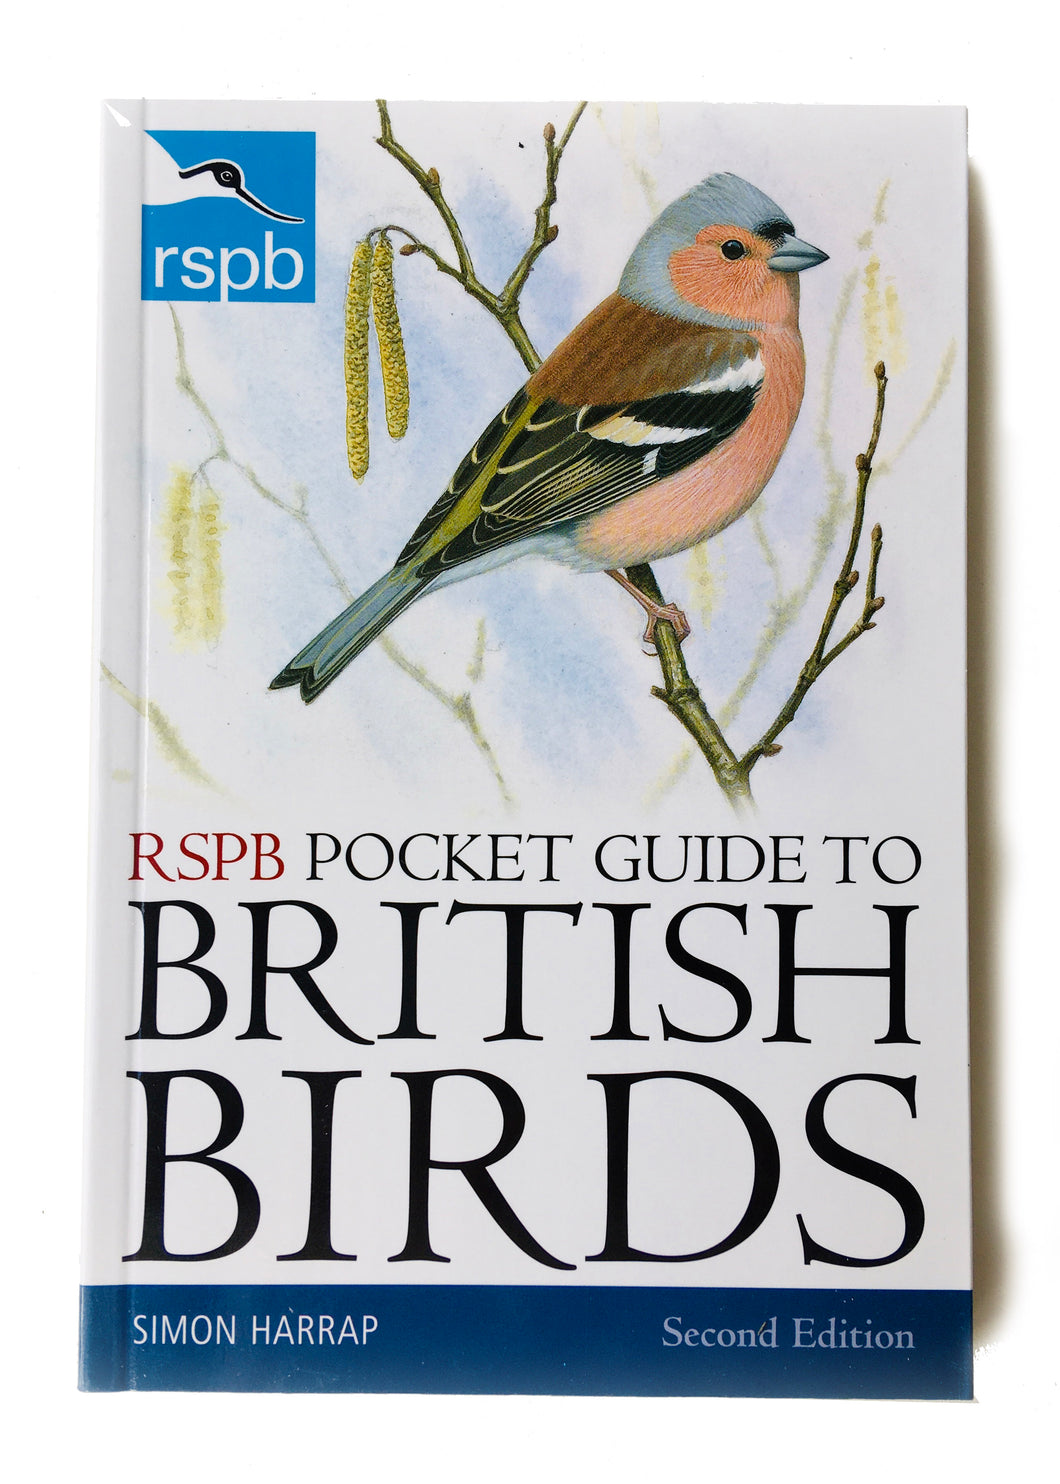 RSPB Pocket Guide